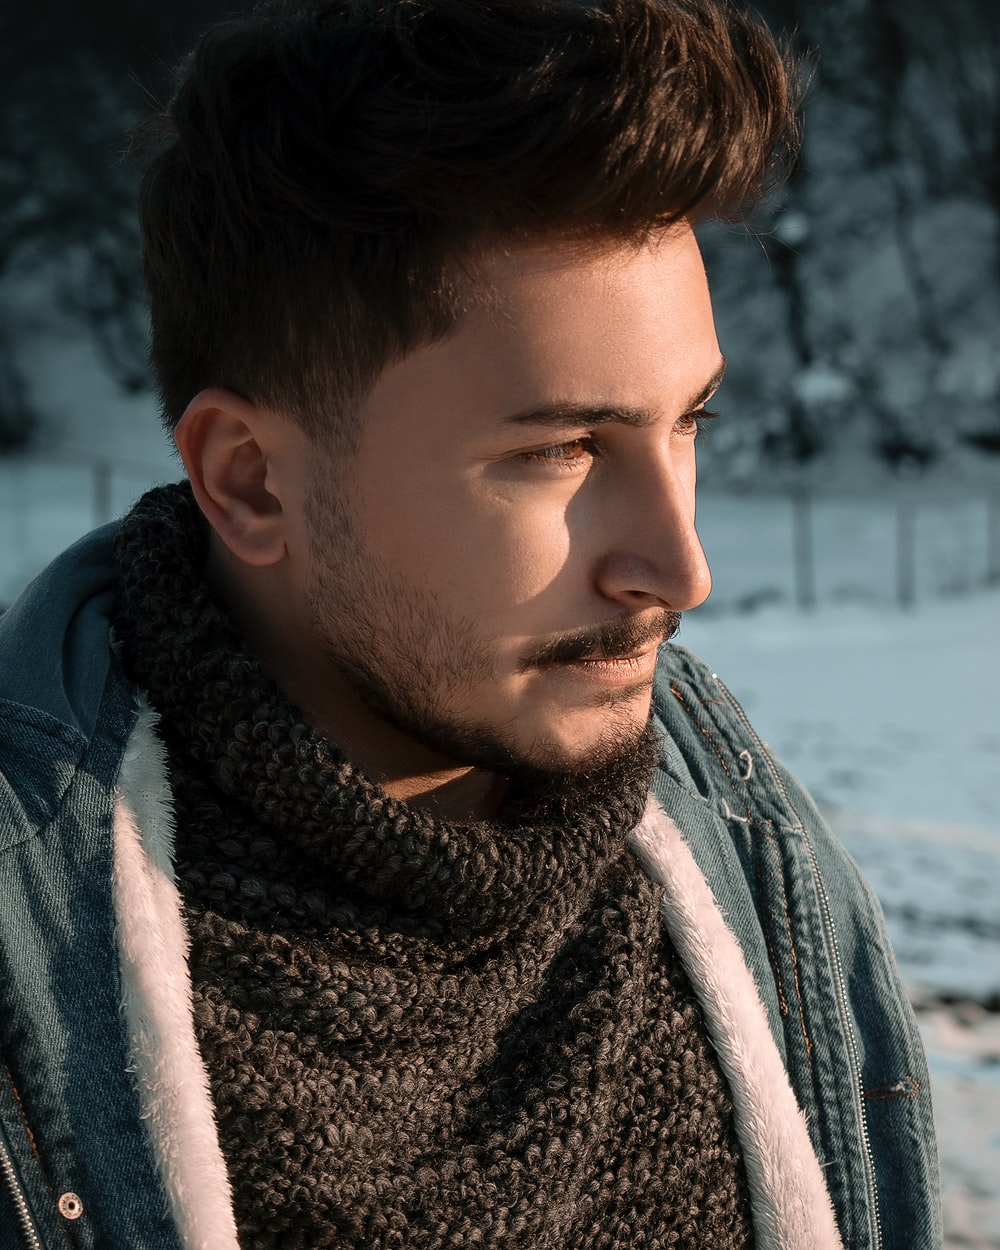 man in gray and white scarf